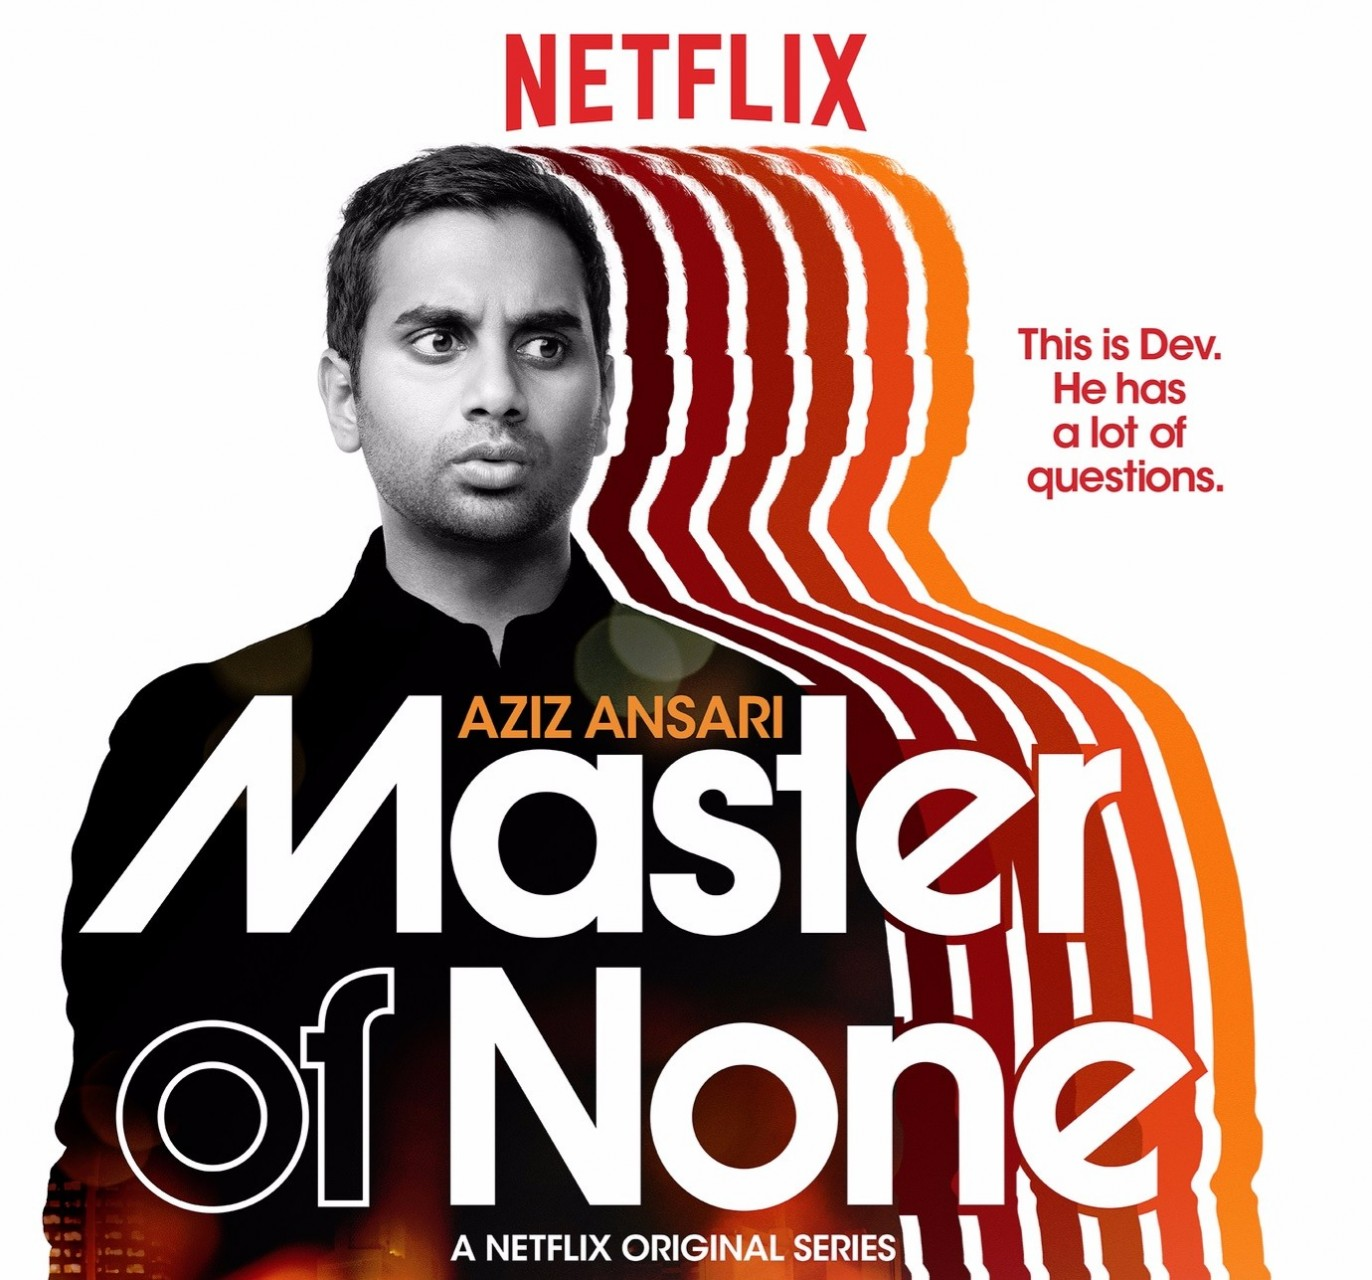 Master-of-None-Poster-Aziz-Ansari